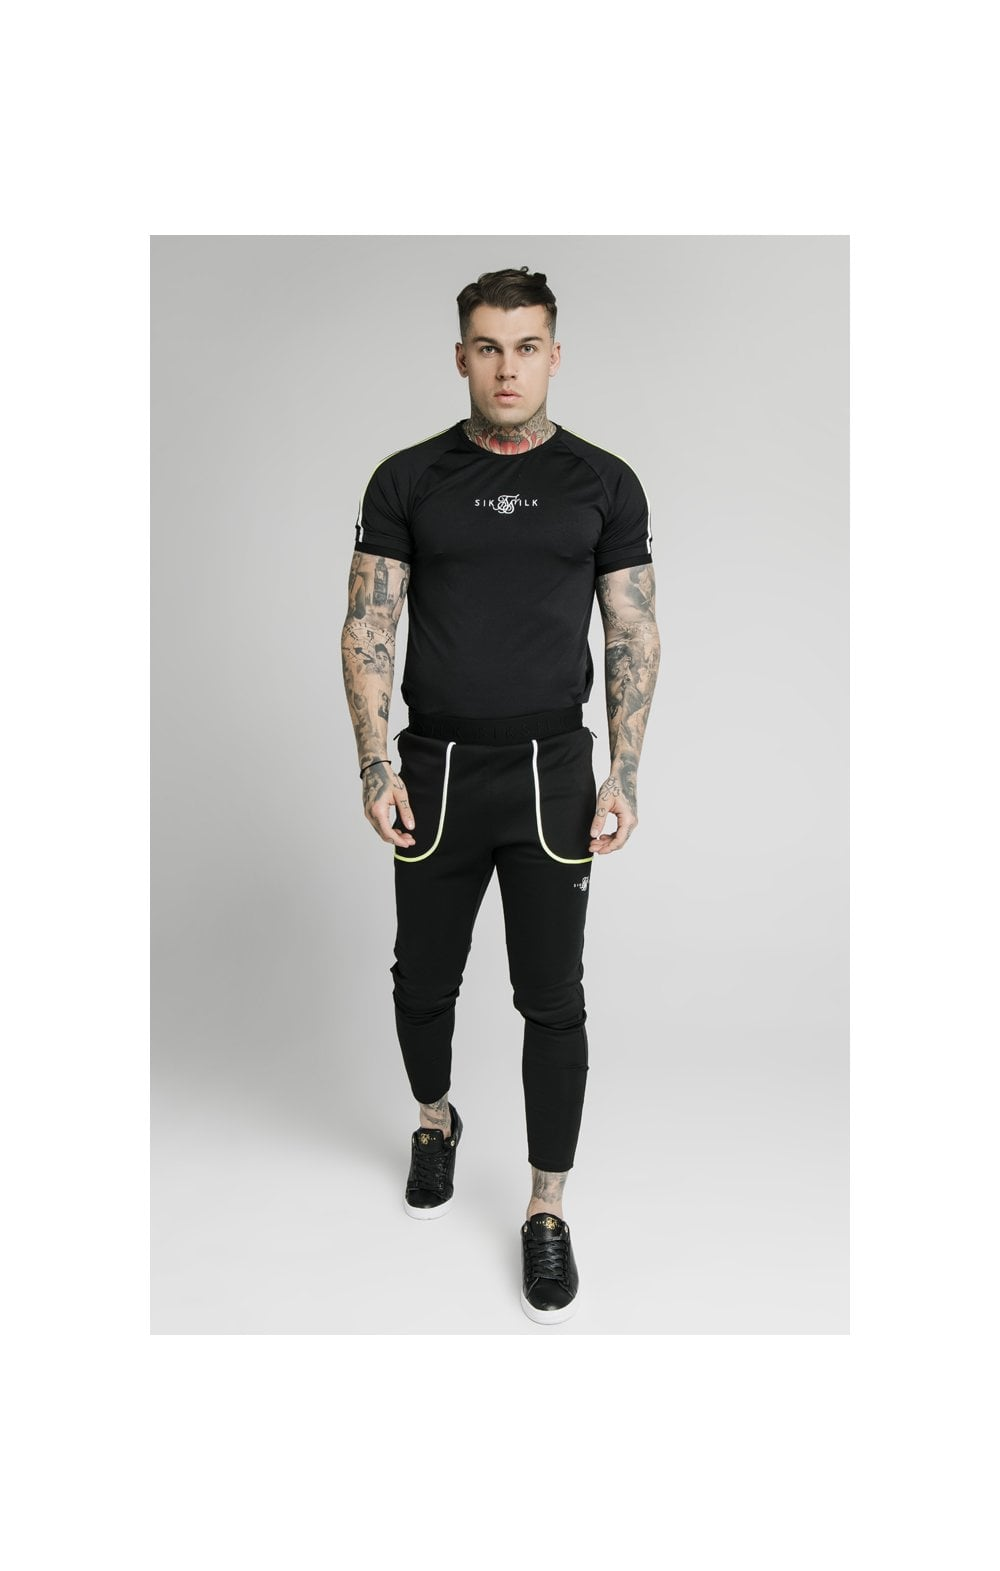 Load image into Gallery viewer, SikSilk Legacy Fade Tech Tee – Black & Fluro White (2)